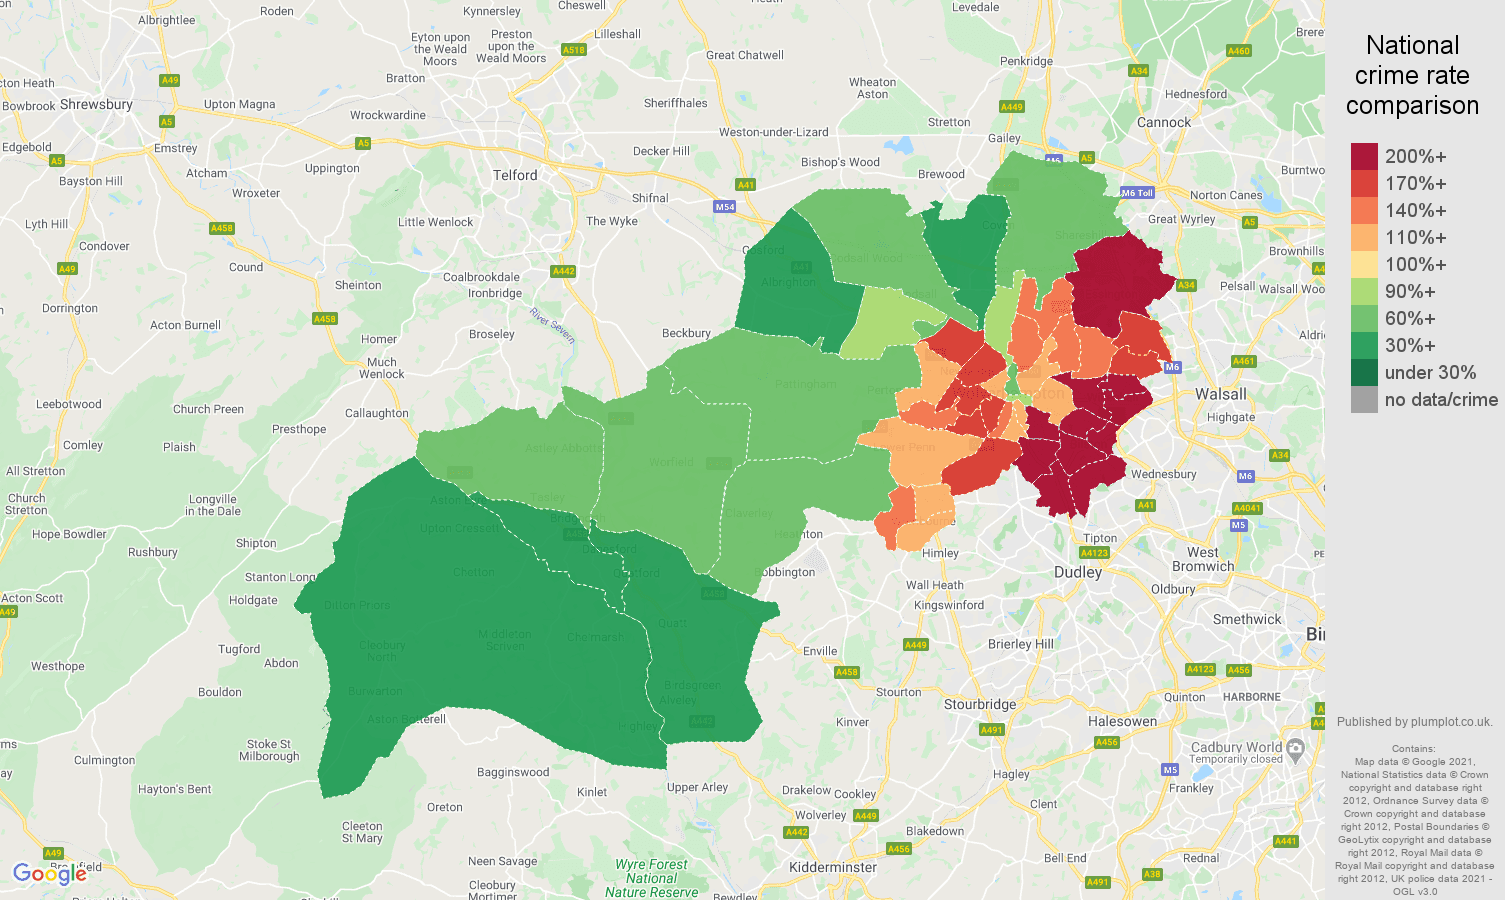 Wolverhampton vehicle crime rate comparison map